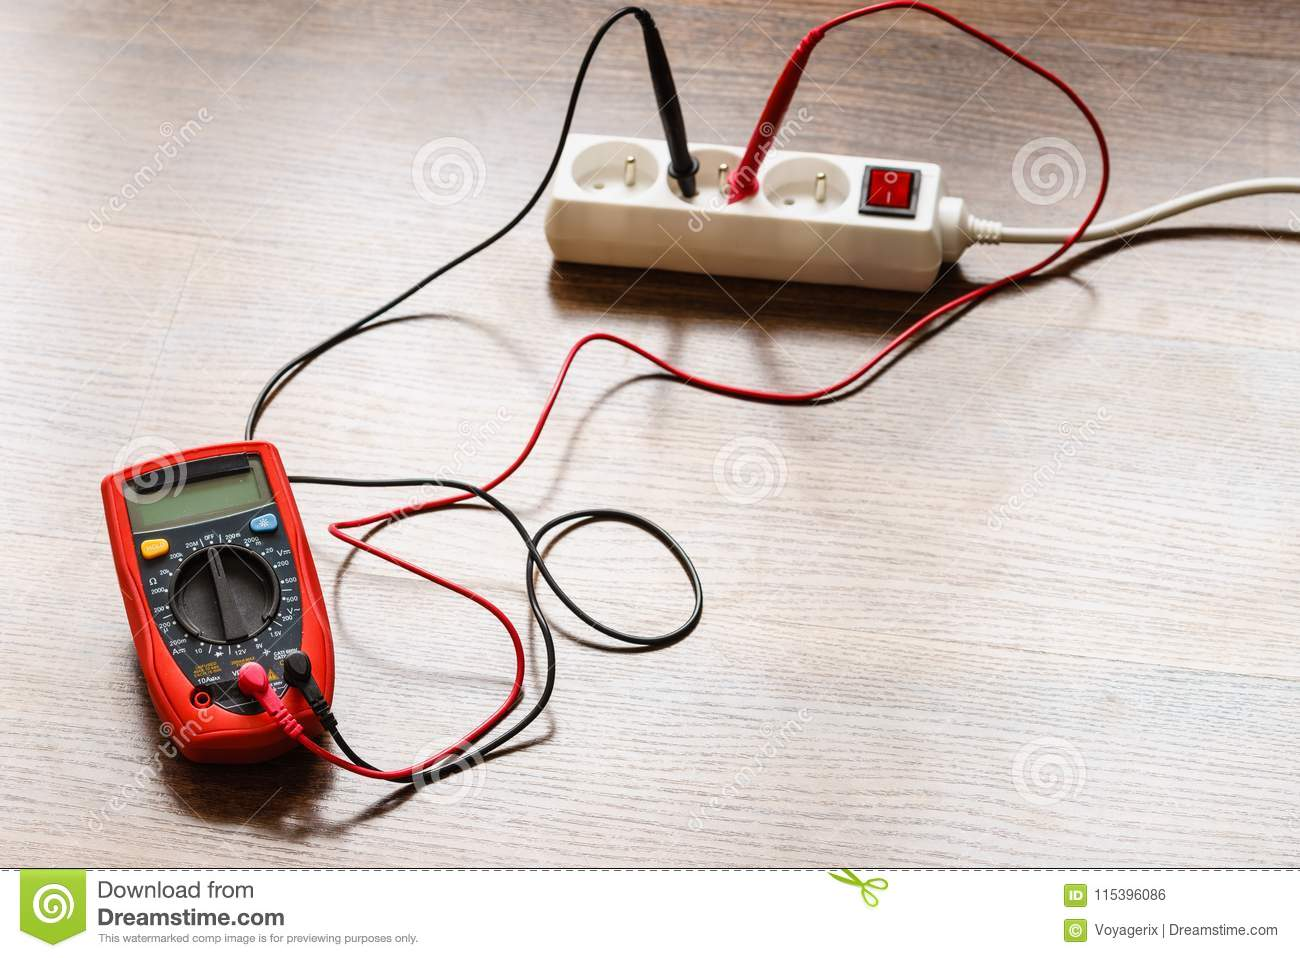 Measurement Voltage In Electrical Socket With Multimeter Stock Photo Electronics Test Circuit For A Series Including Voltmeter